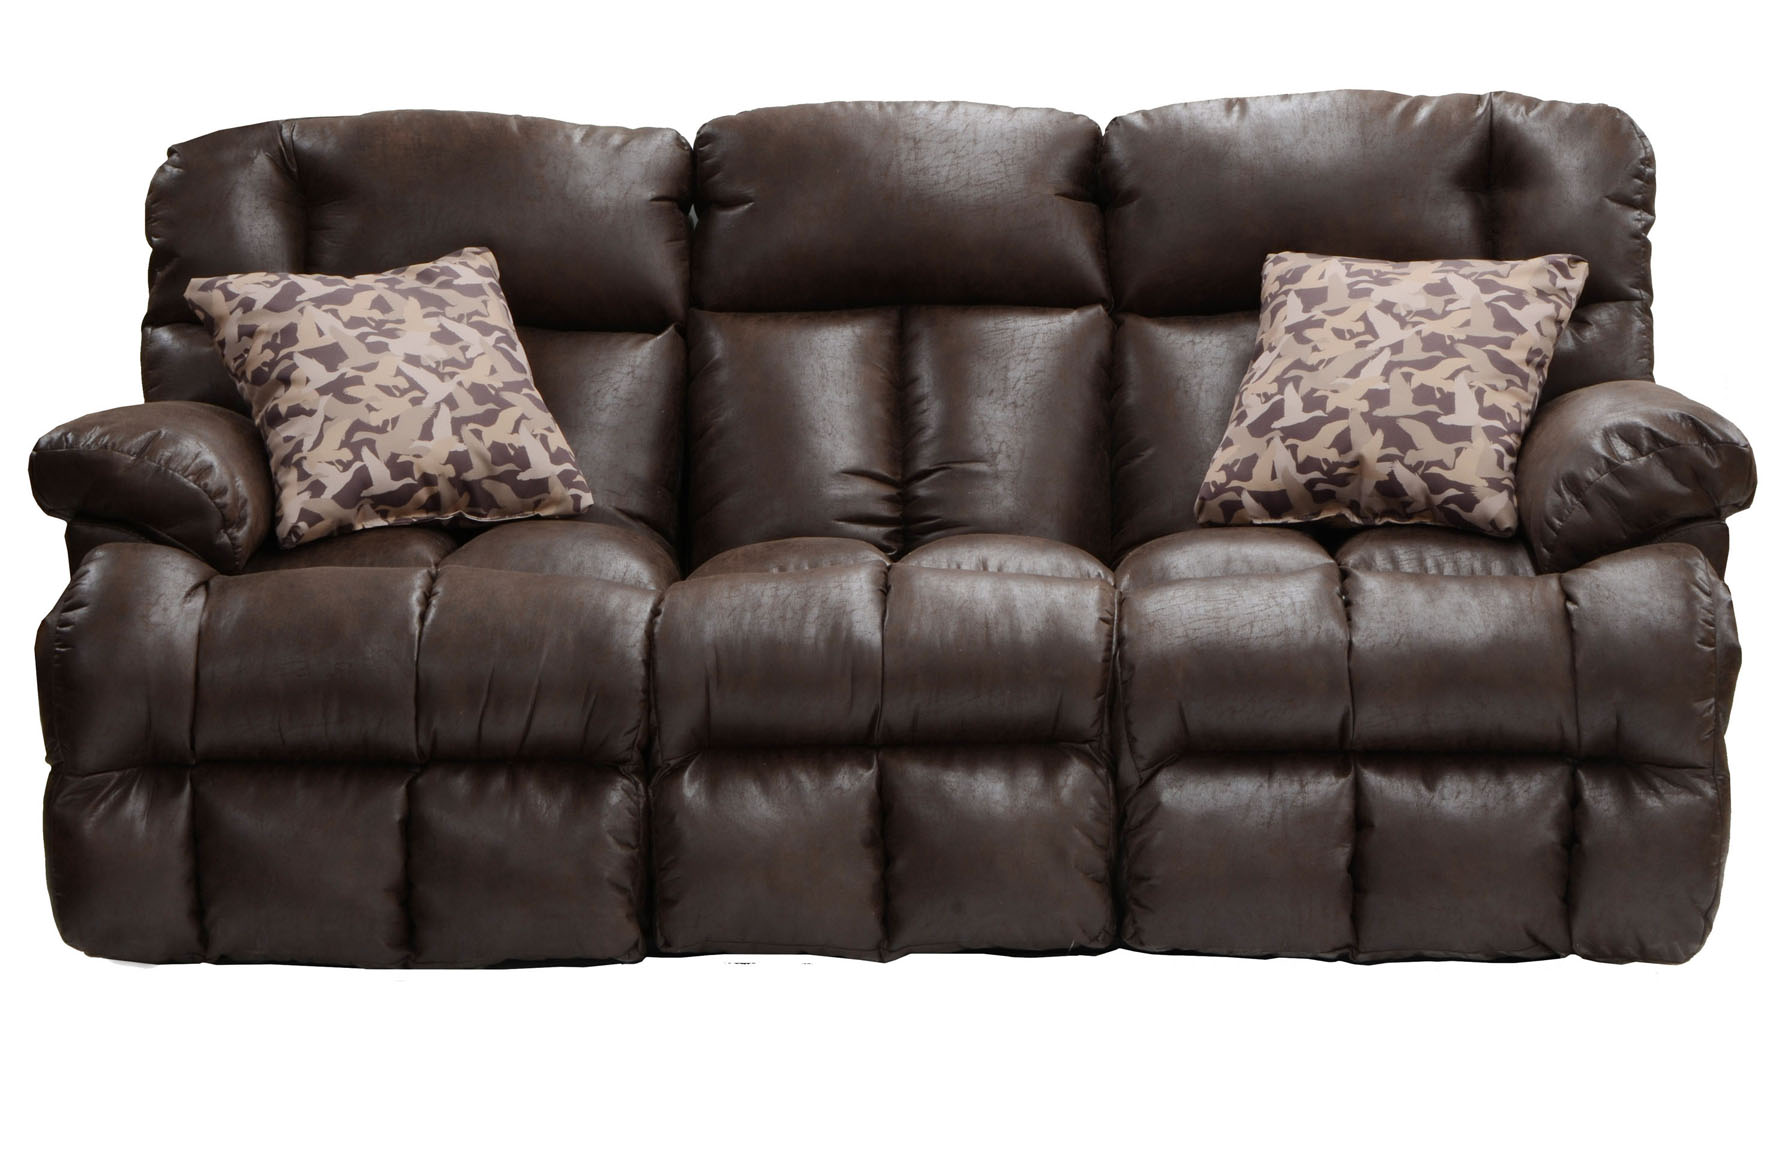 Duck Dynasty 2pc Trapper Reclining Sofa And Loveseat In Realtree Xtra 130 By Catnapper Sofas